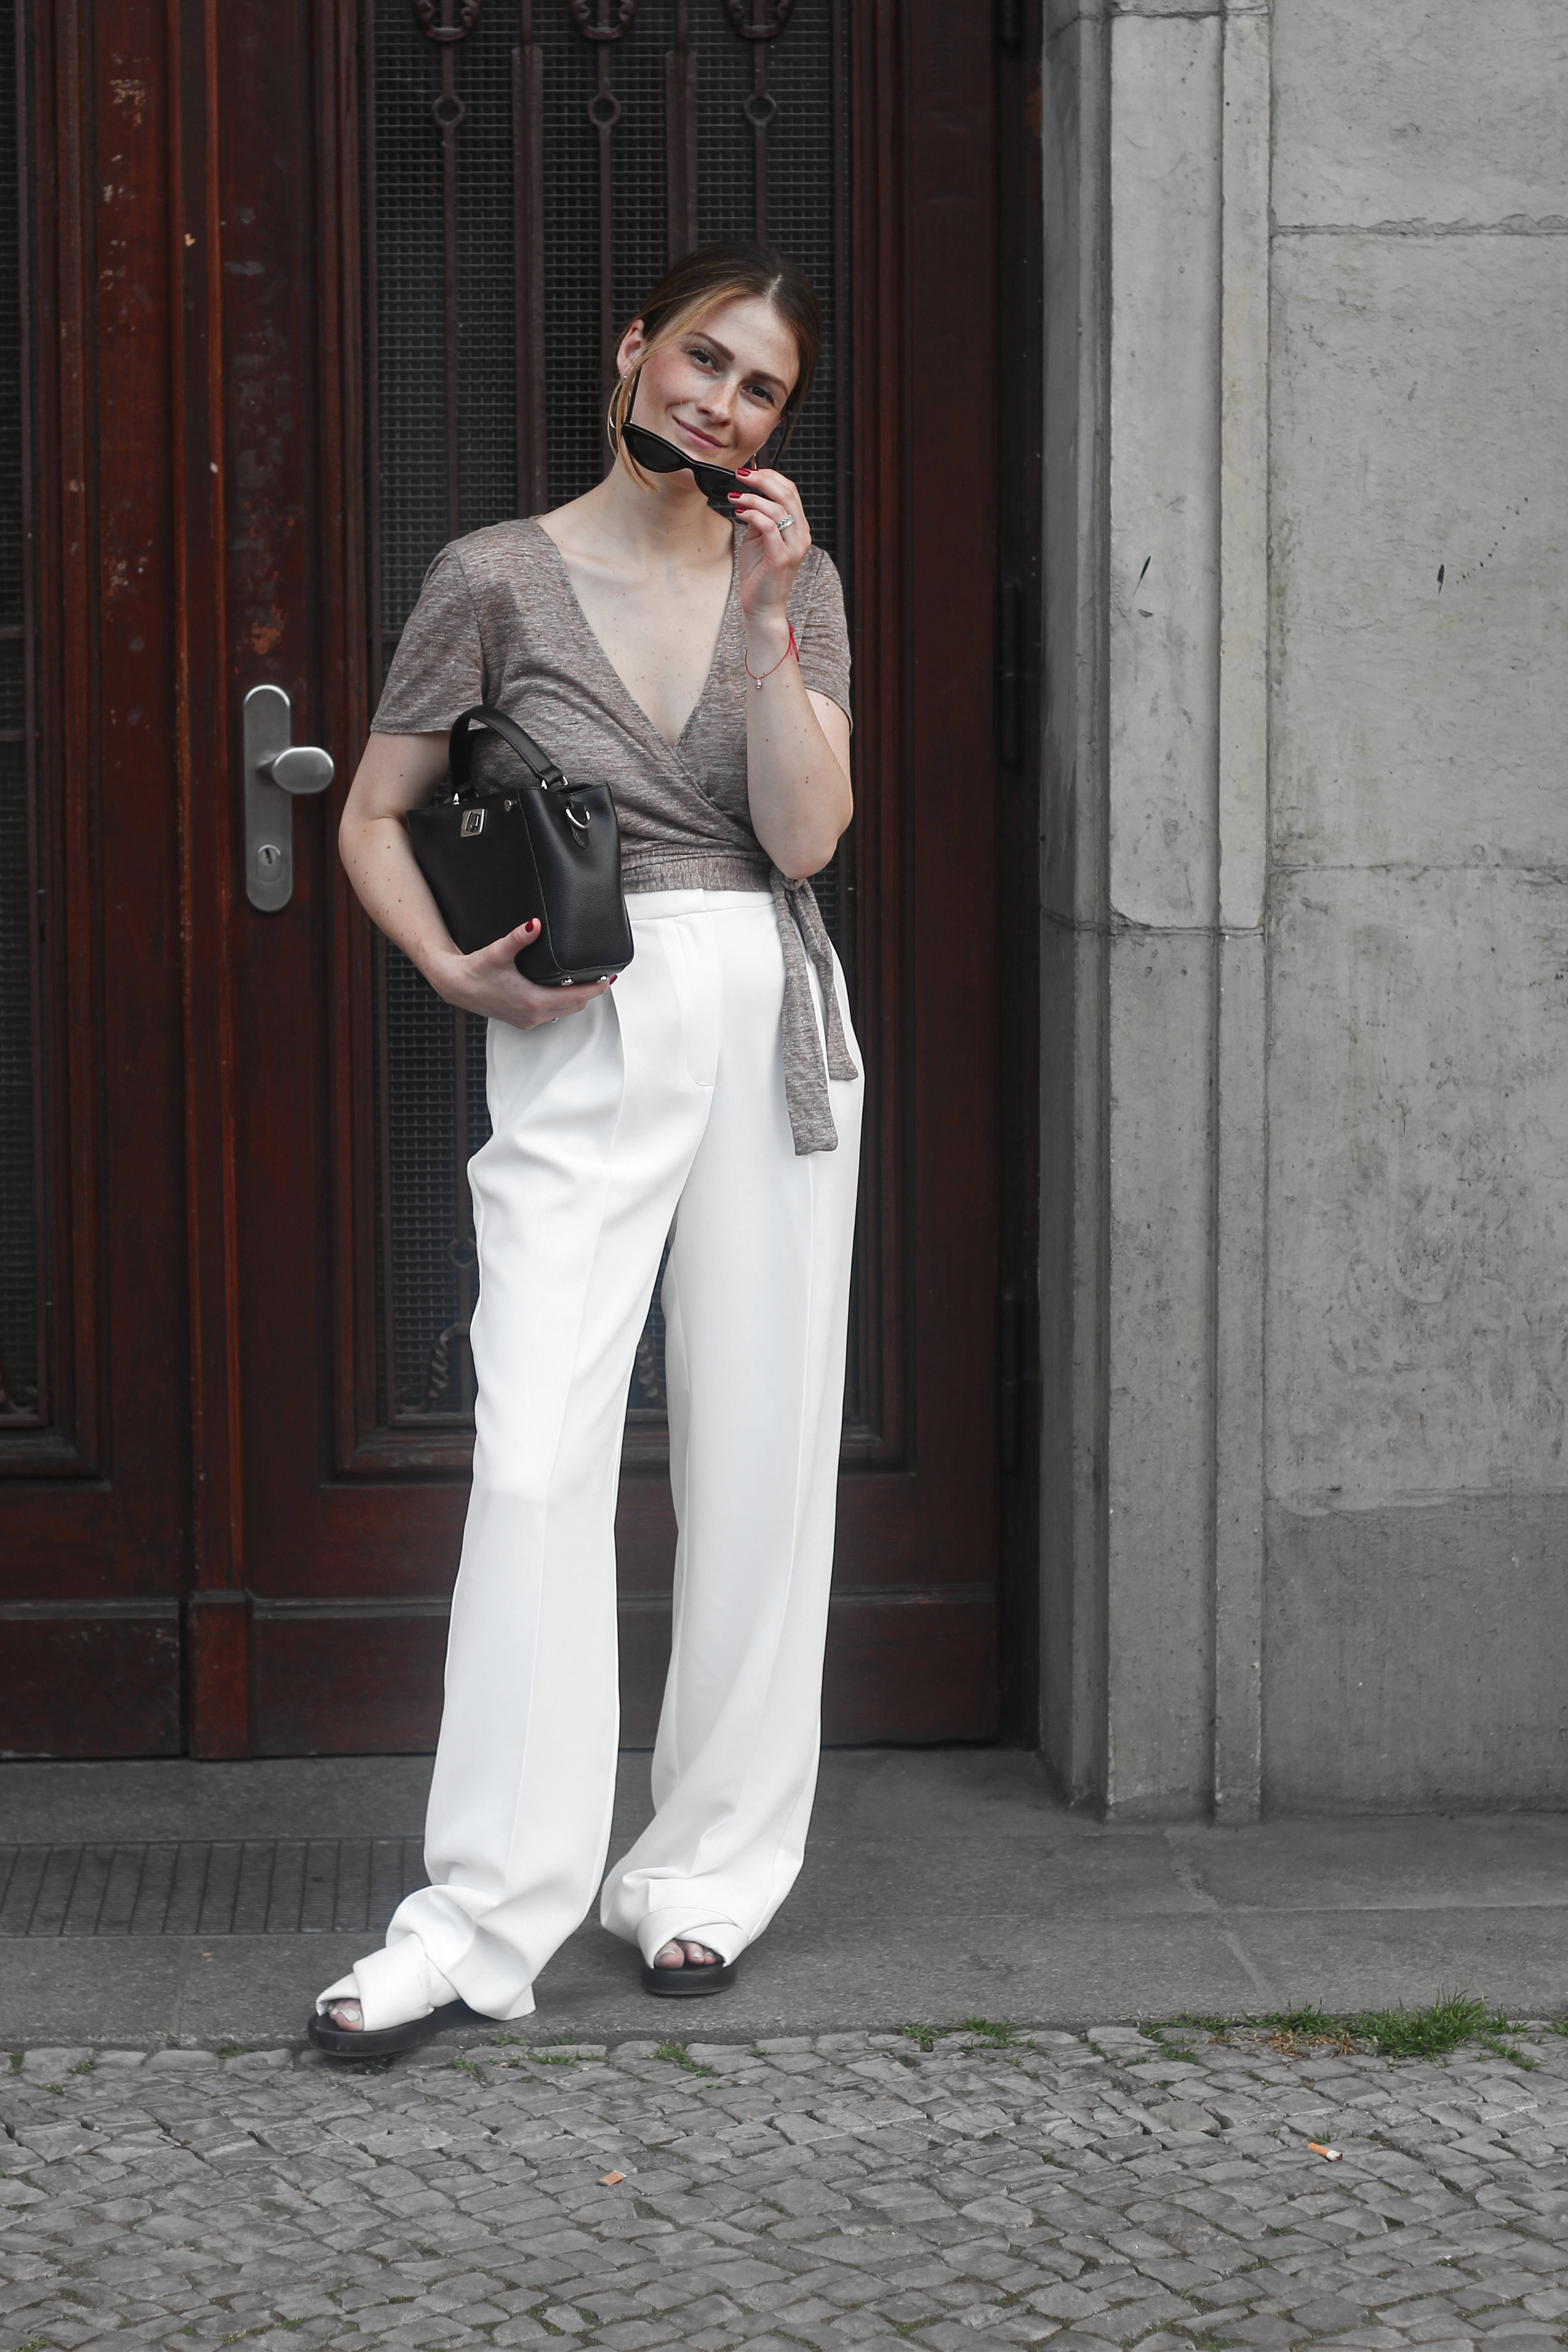 annaporter-white-trousers-croppedtop-summer-look-1